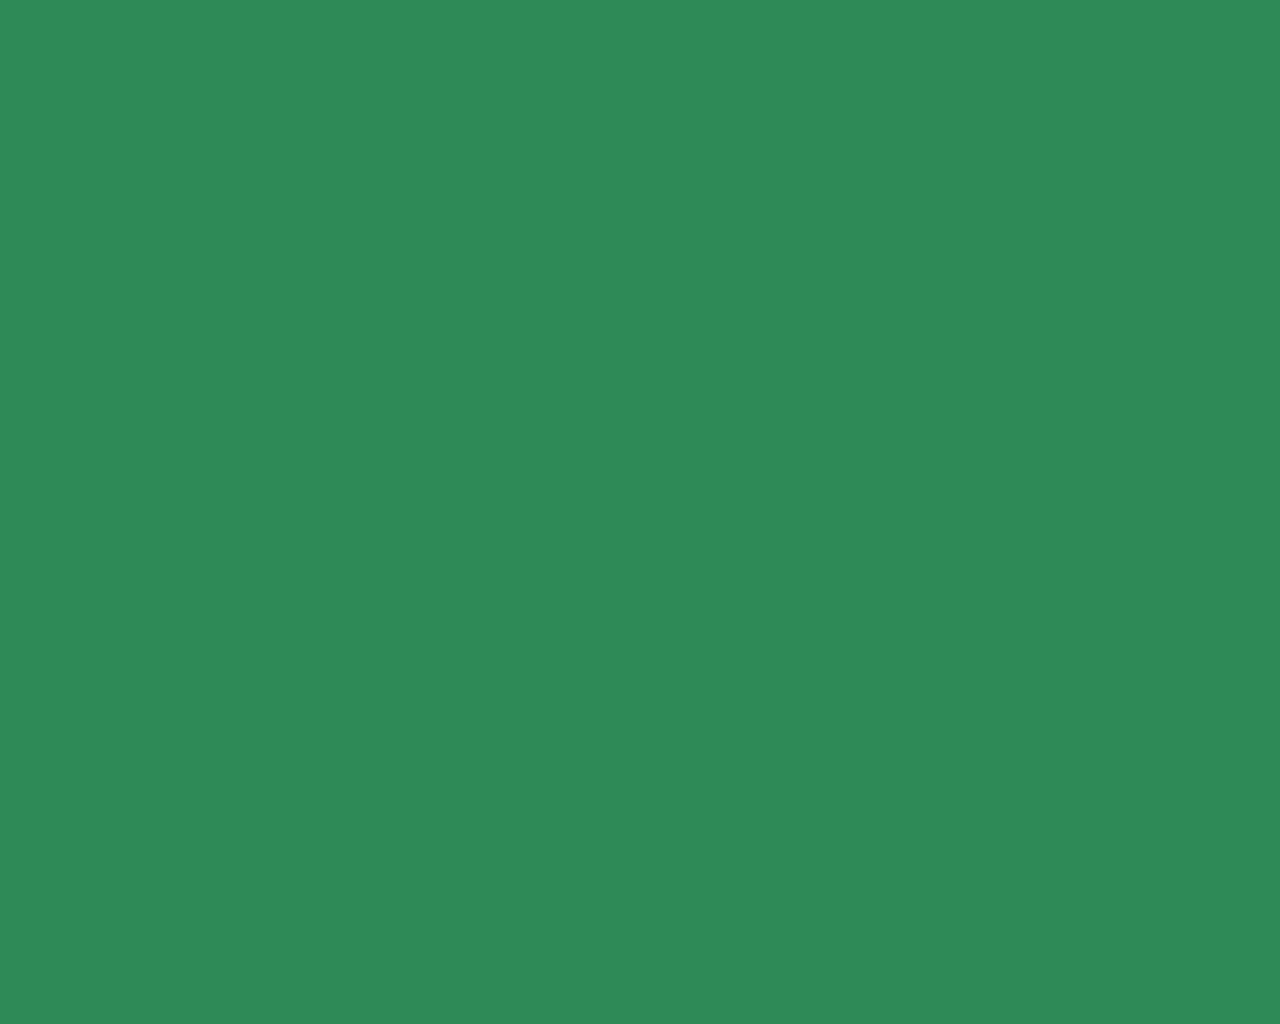 1280x1024 Sea Green Solid Color Background